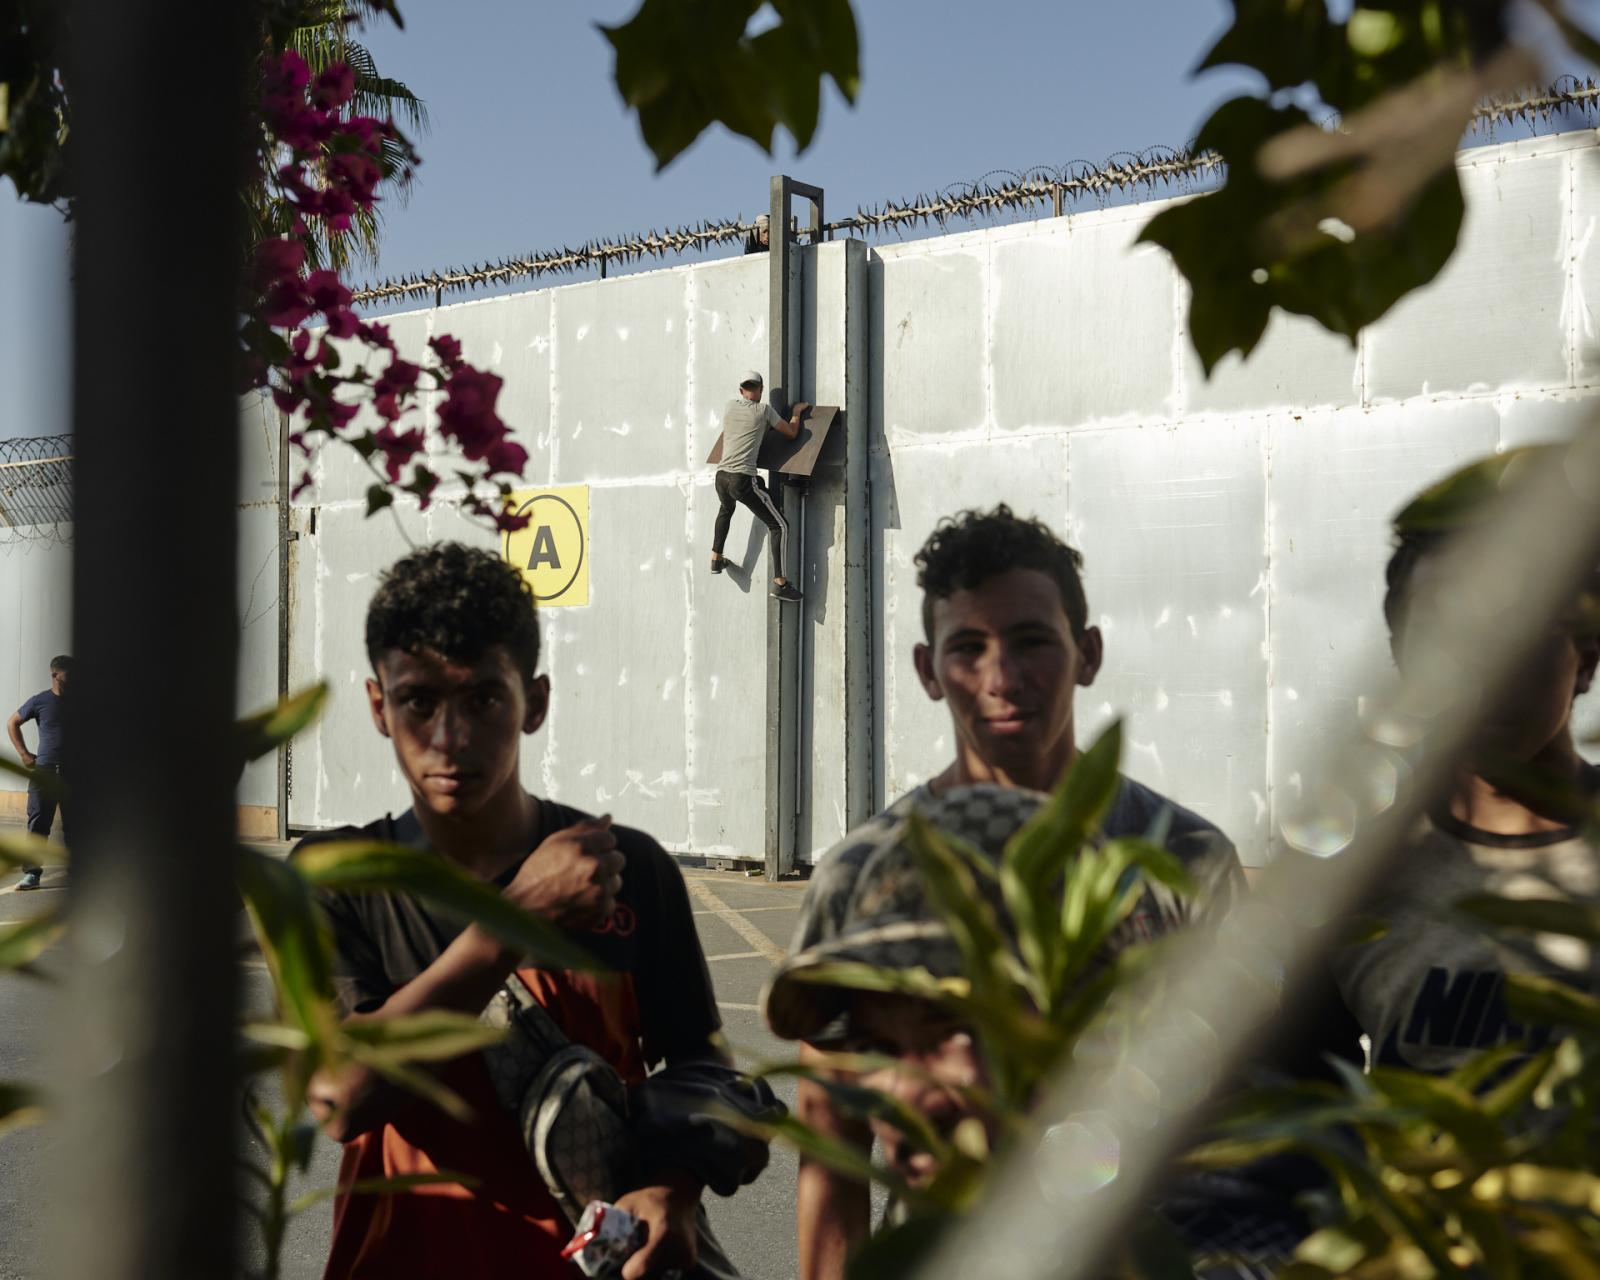 Once migrants reach the Spanish town of Ceuta, they need to smuggle inside a cargo ship, trucks or any other option in order to cross the Gibraltar strait.